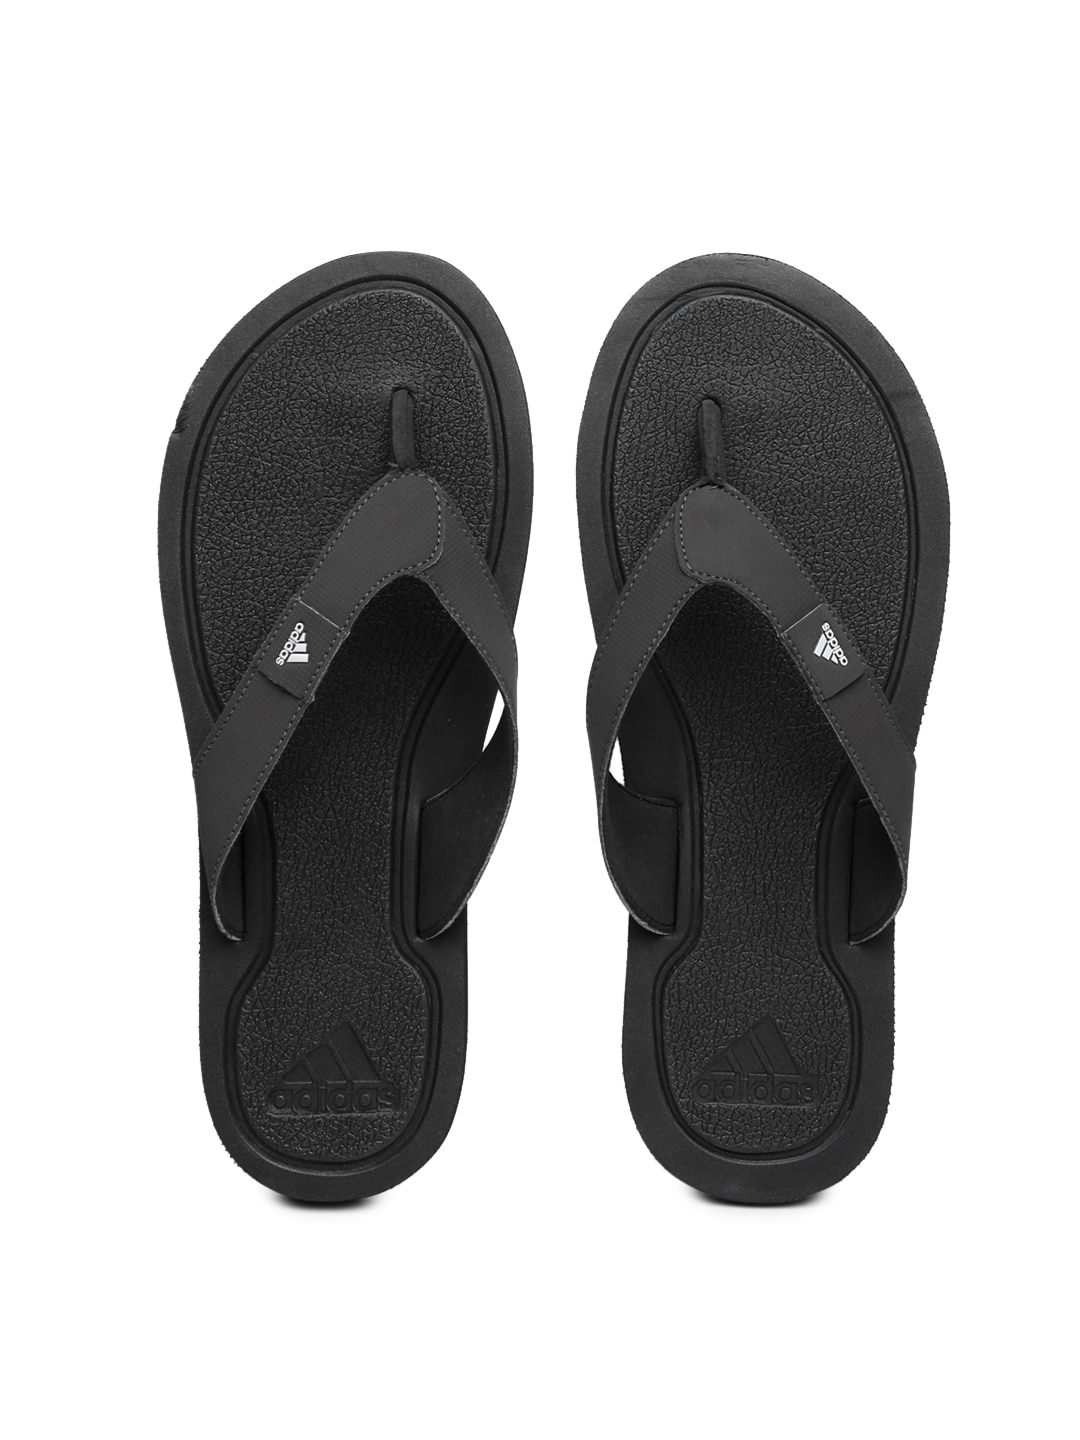 1f714bb34b5f Buy adidas mens sandals flip flop   OFF58% Discounted